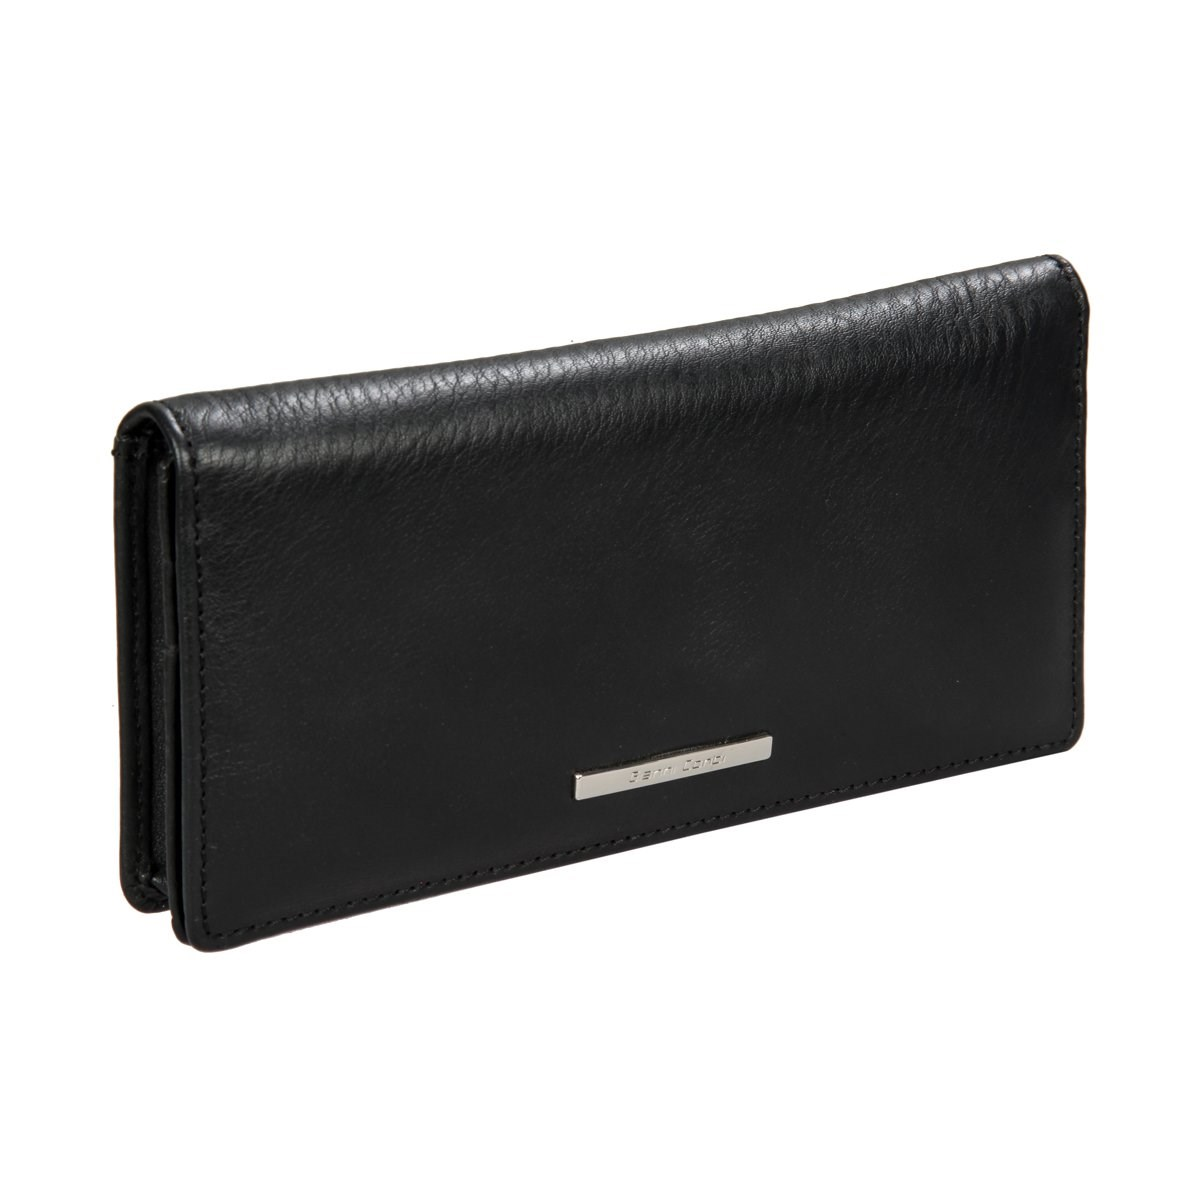 Coin Purse Gianni Conti 9508268 black simline vintage genuine crazy horse cow leather men men s long hasp wallet wallets purse zipper coin pocket holder with chain